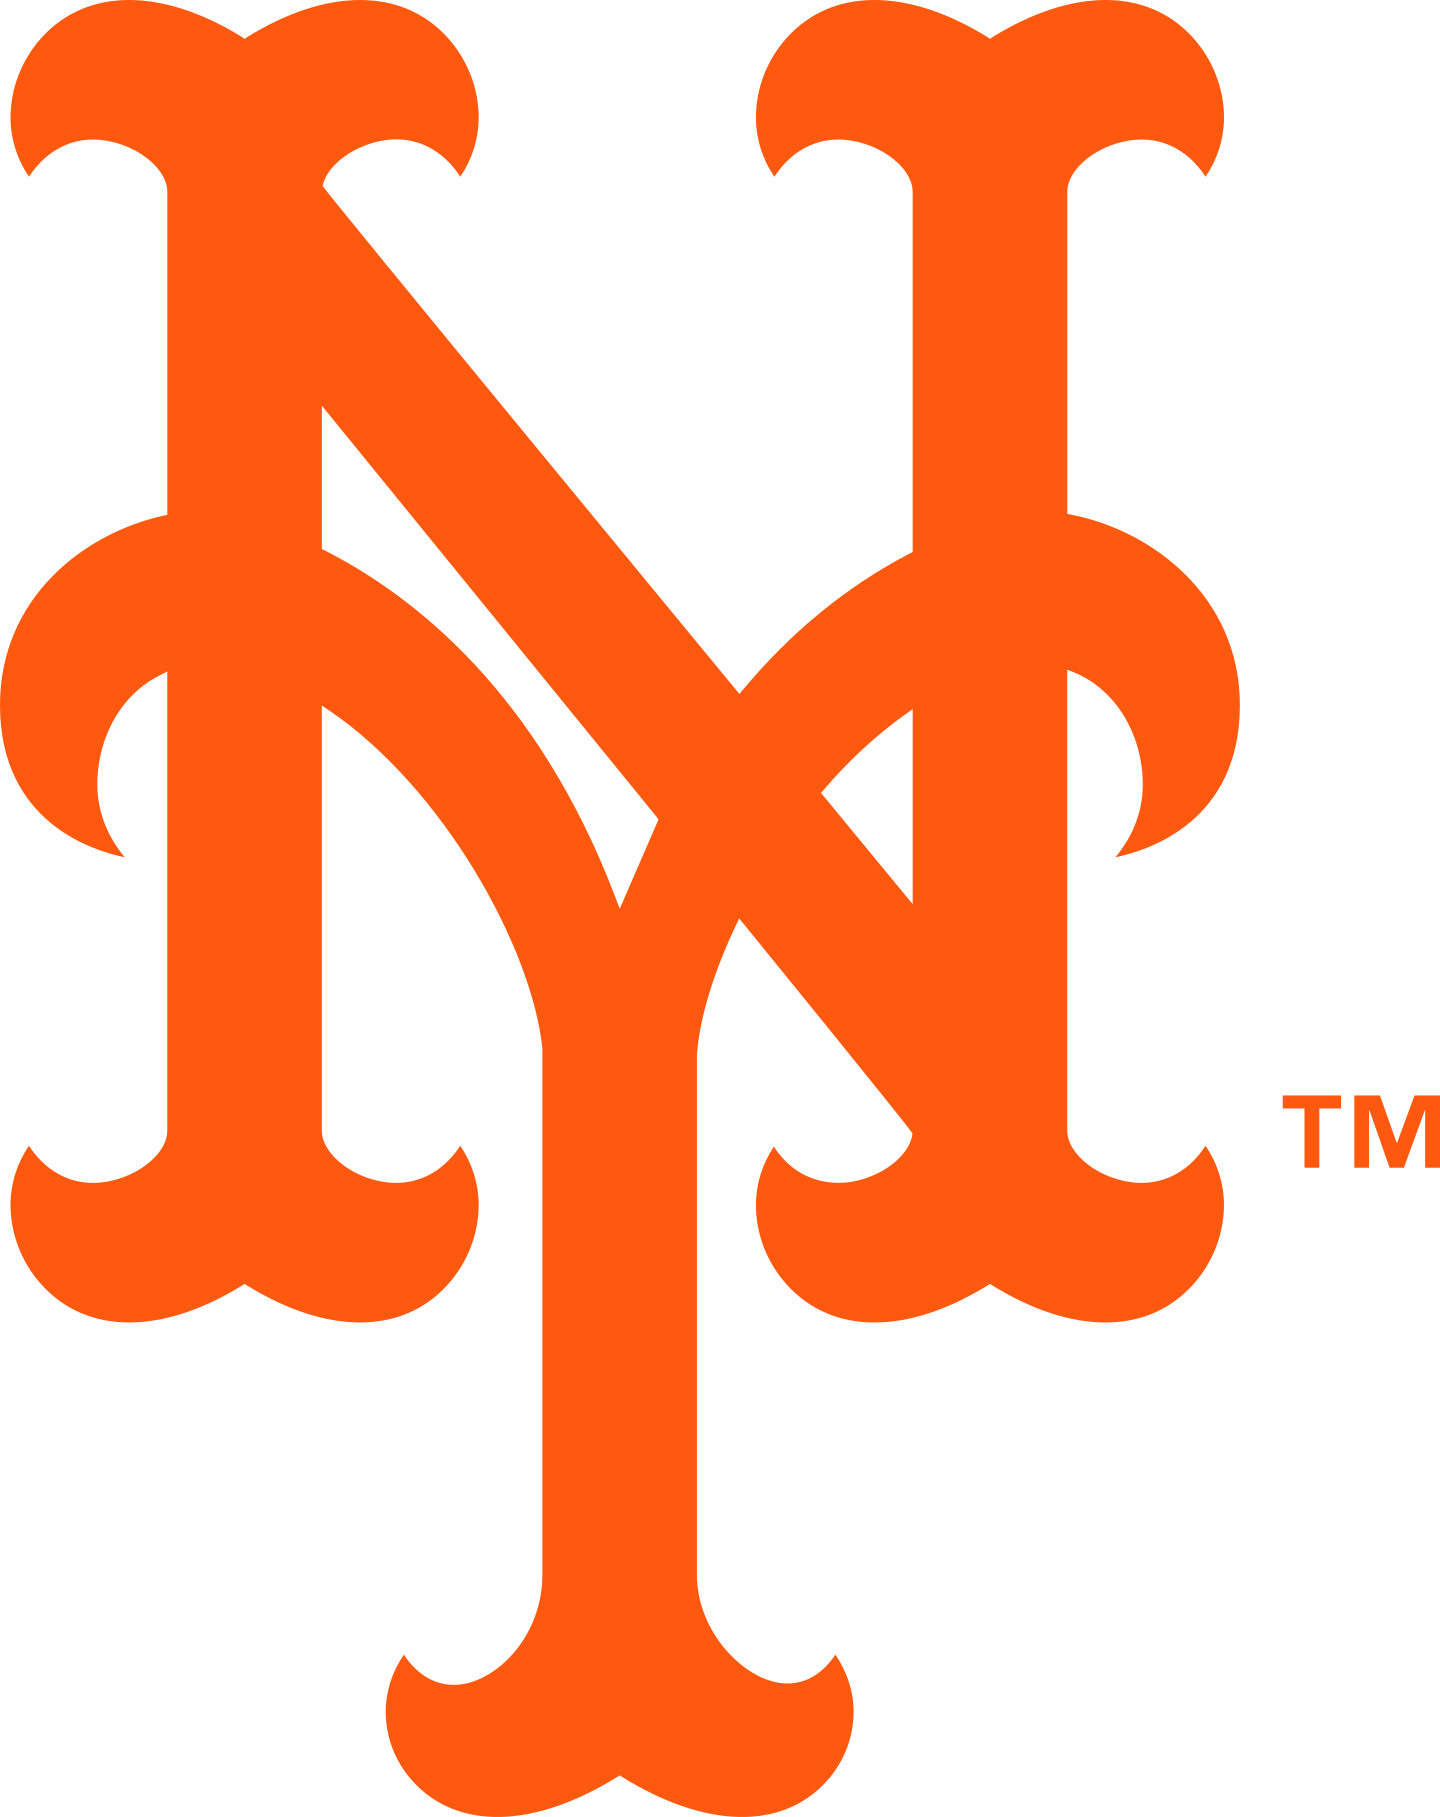 new york mets logo 2 - New York Mets Logo